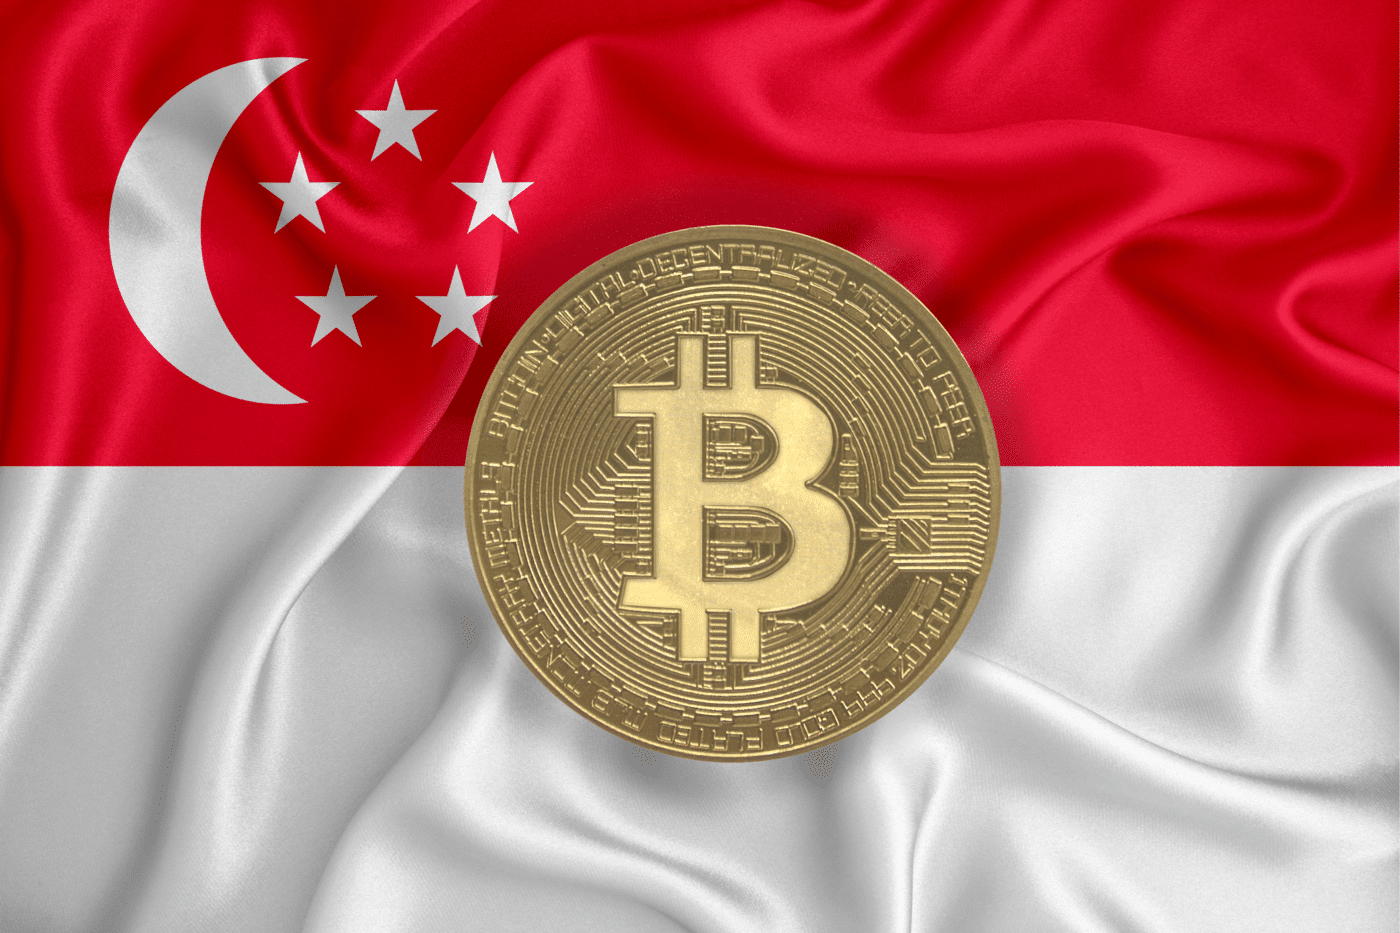 In Singapore 35% of citizens own bitcoin